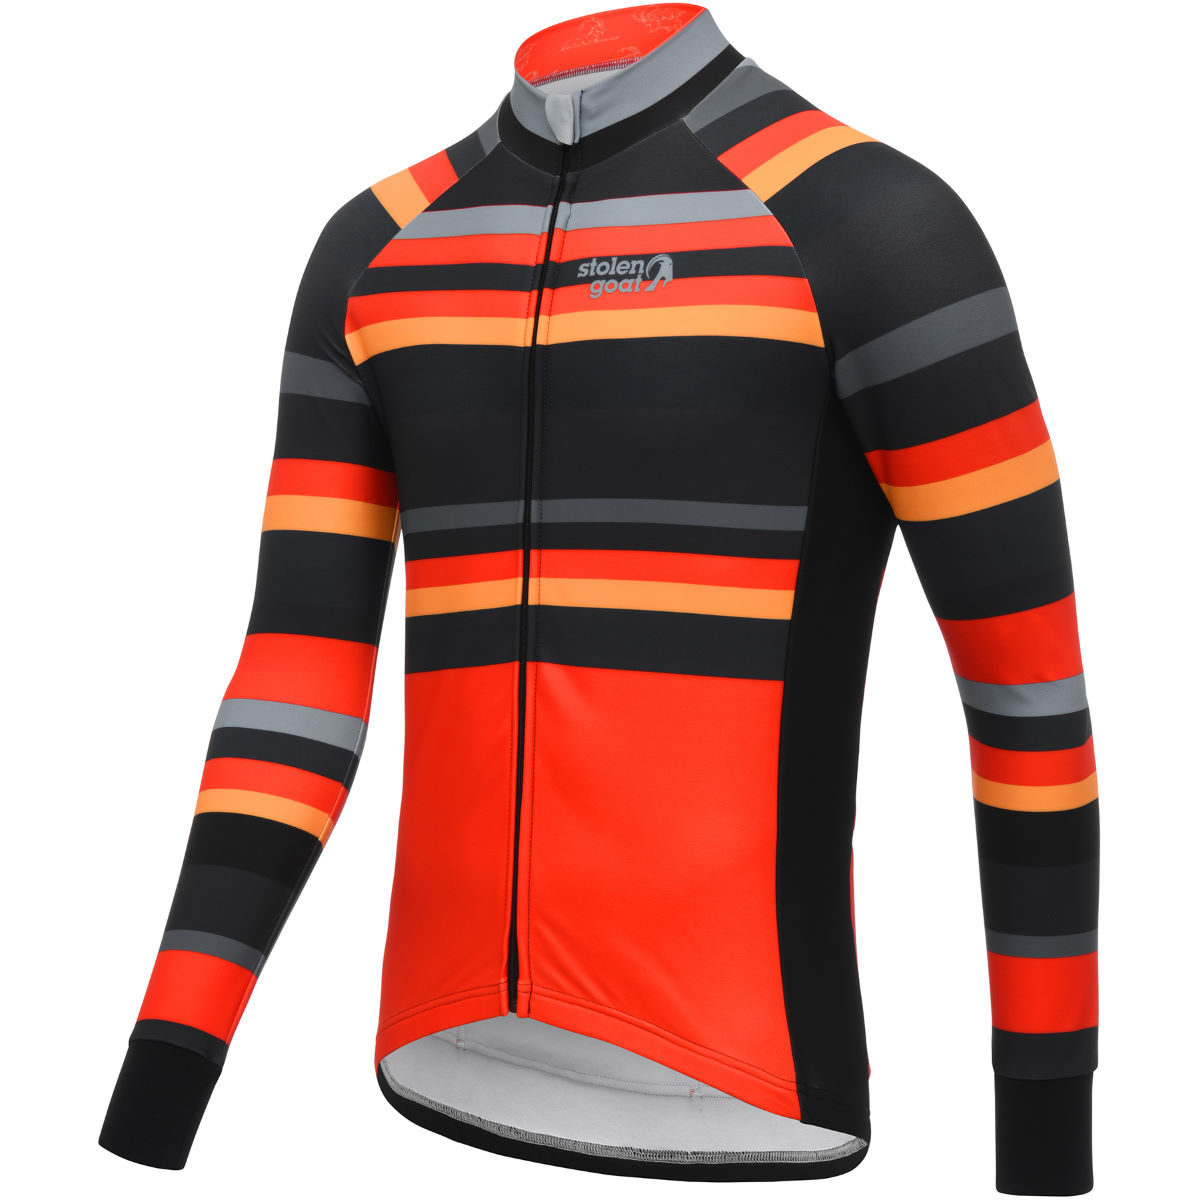 Stolen Goat Orkaan Galaxie Long Sleeve Jersey - Maillots